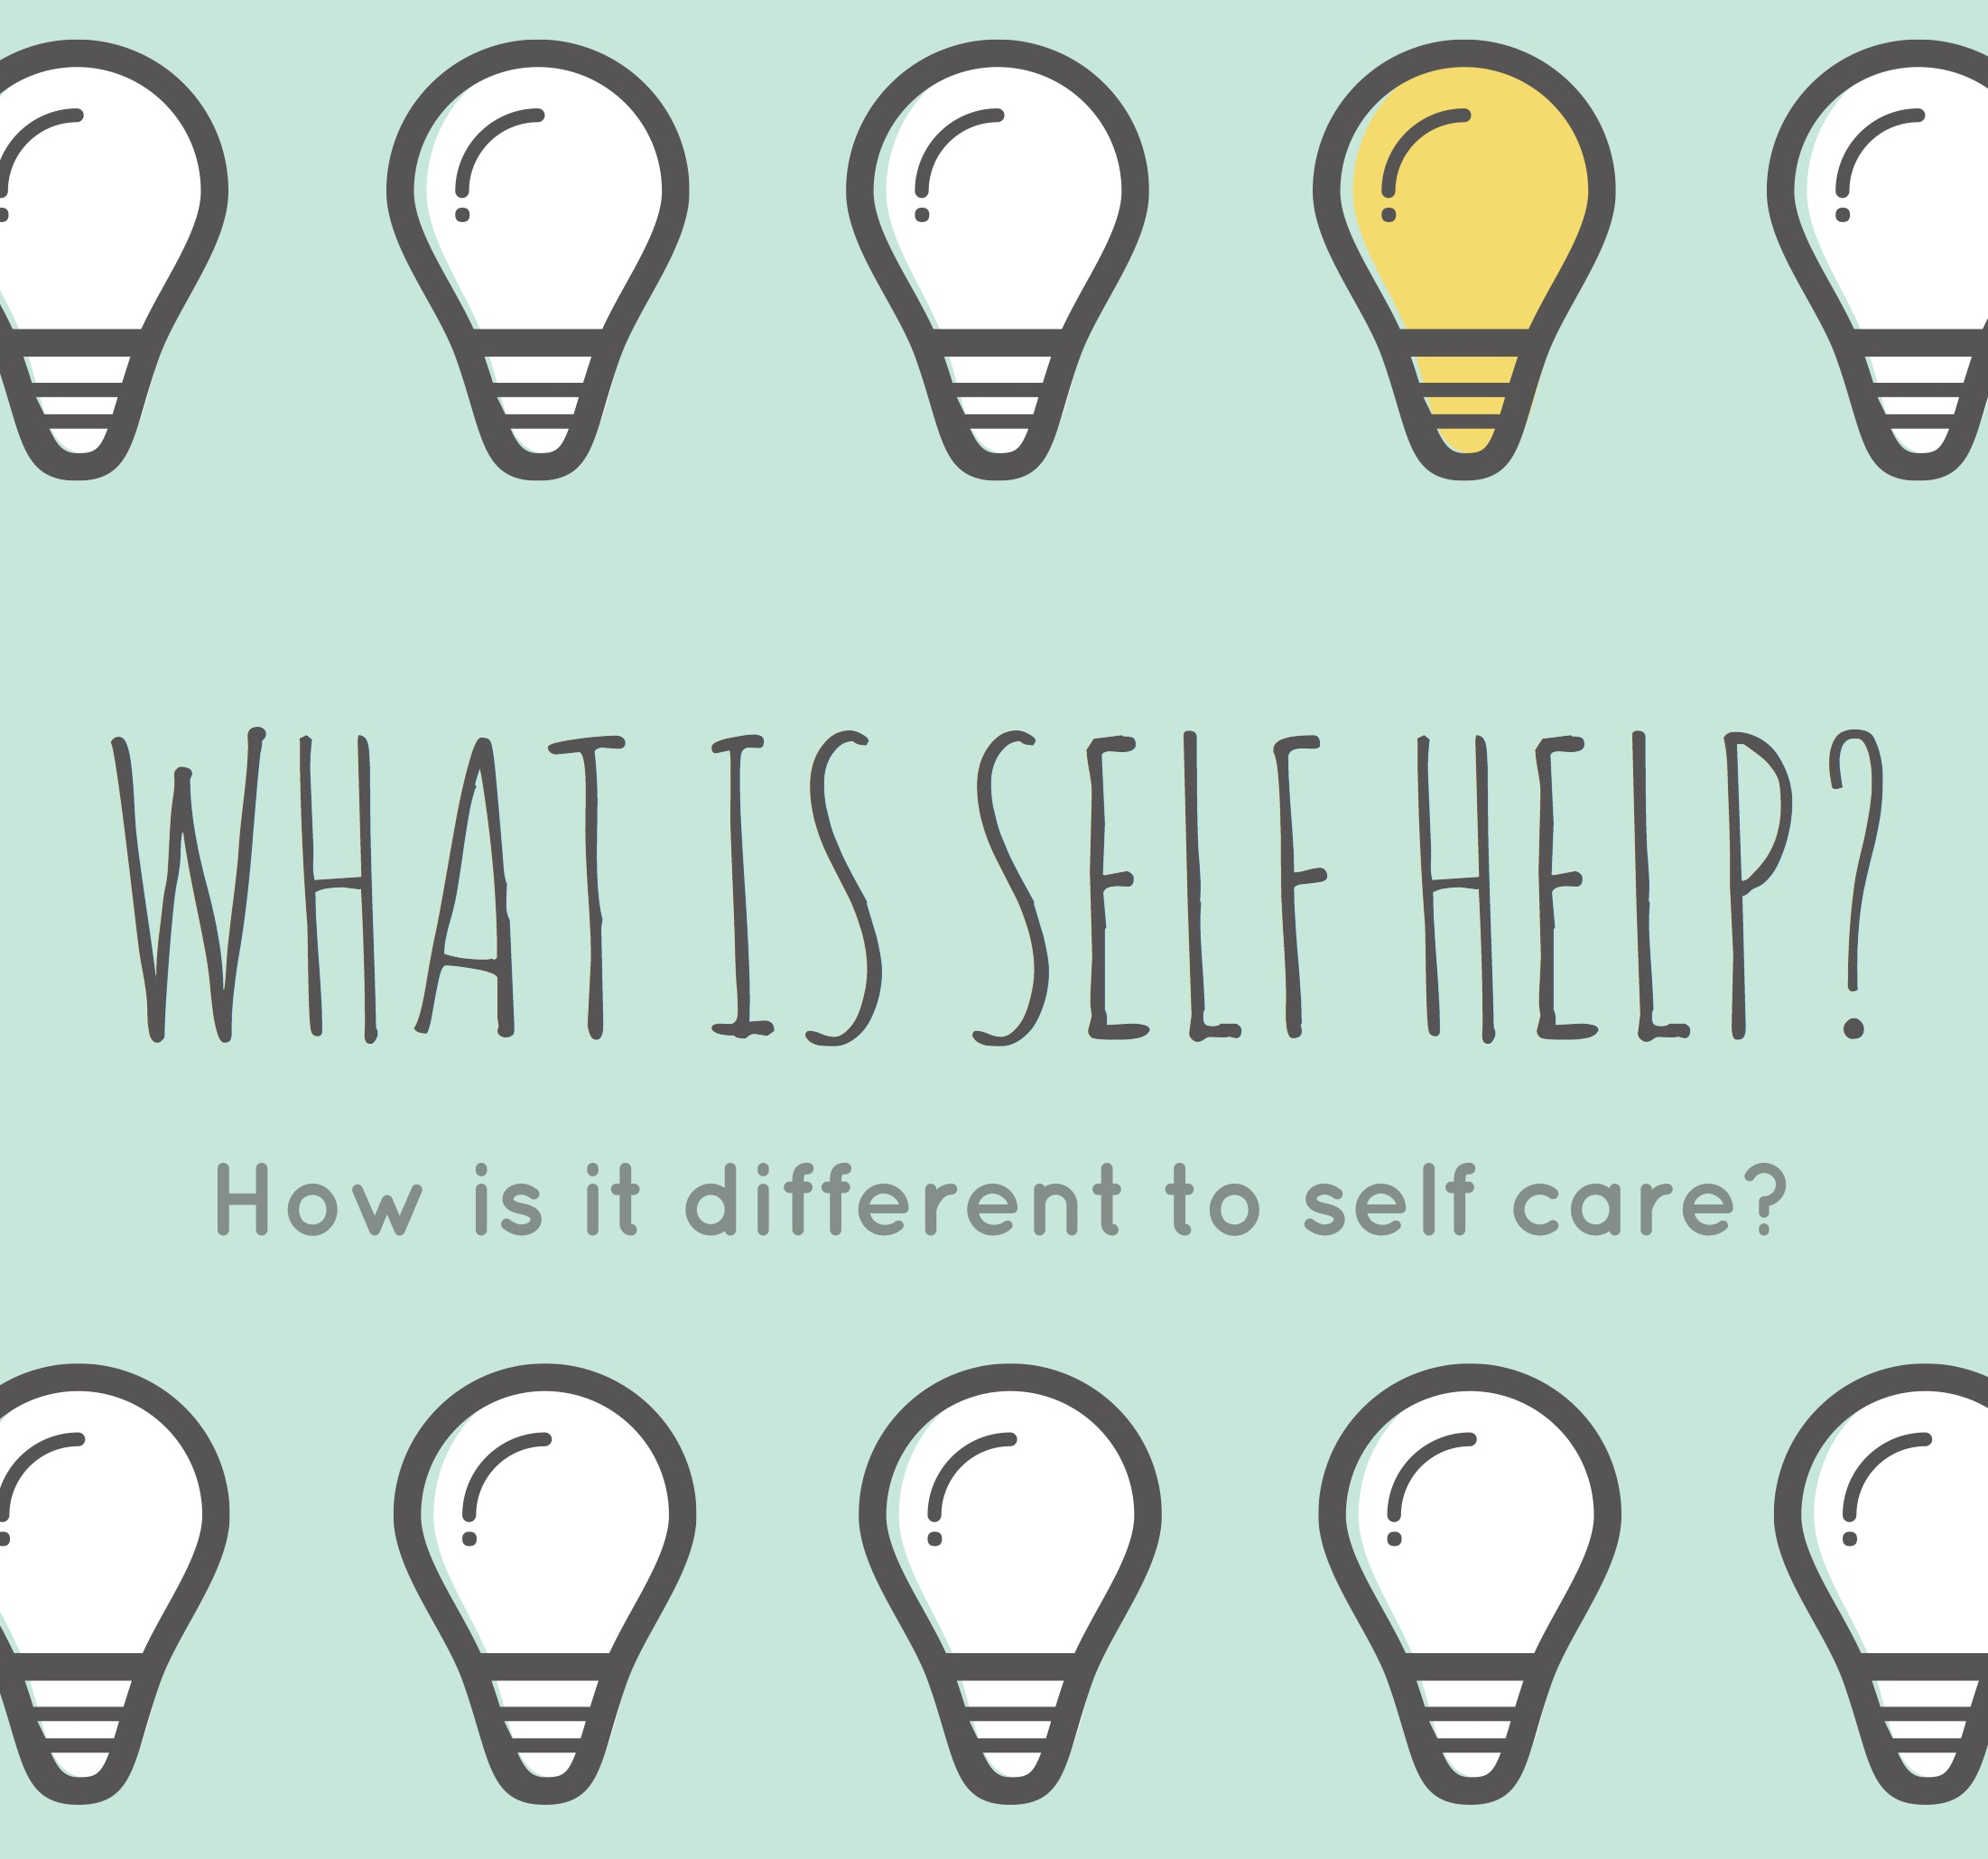 What is self help? - By Sarah Melen